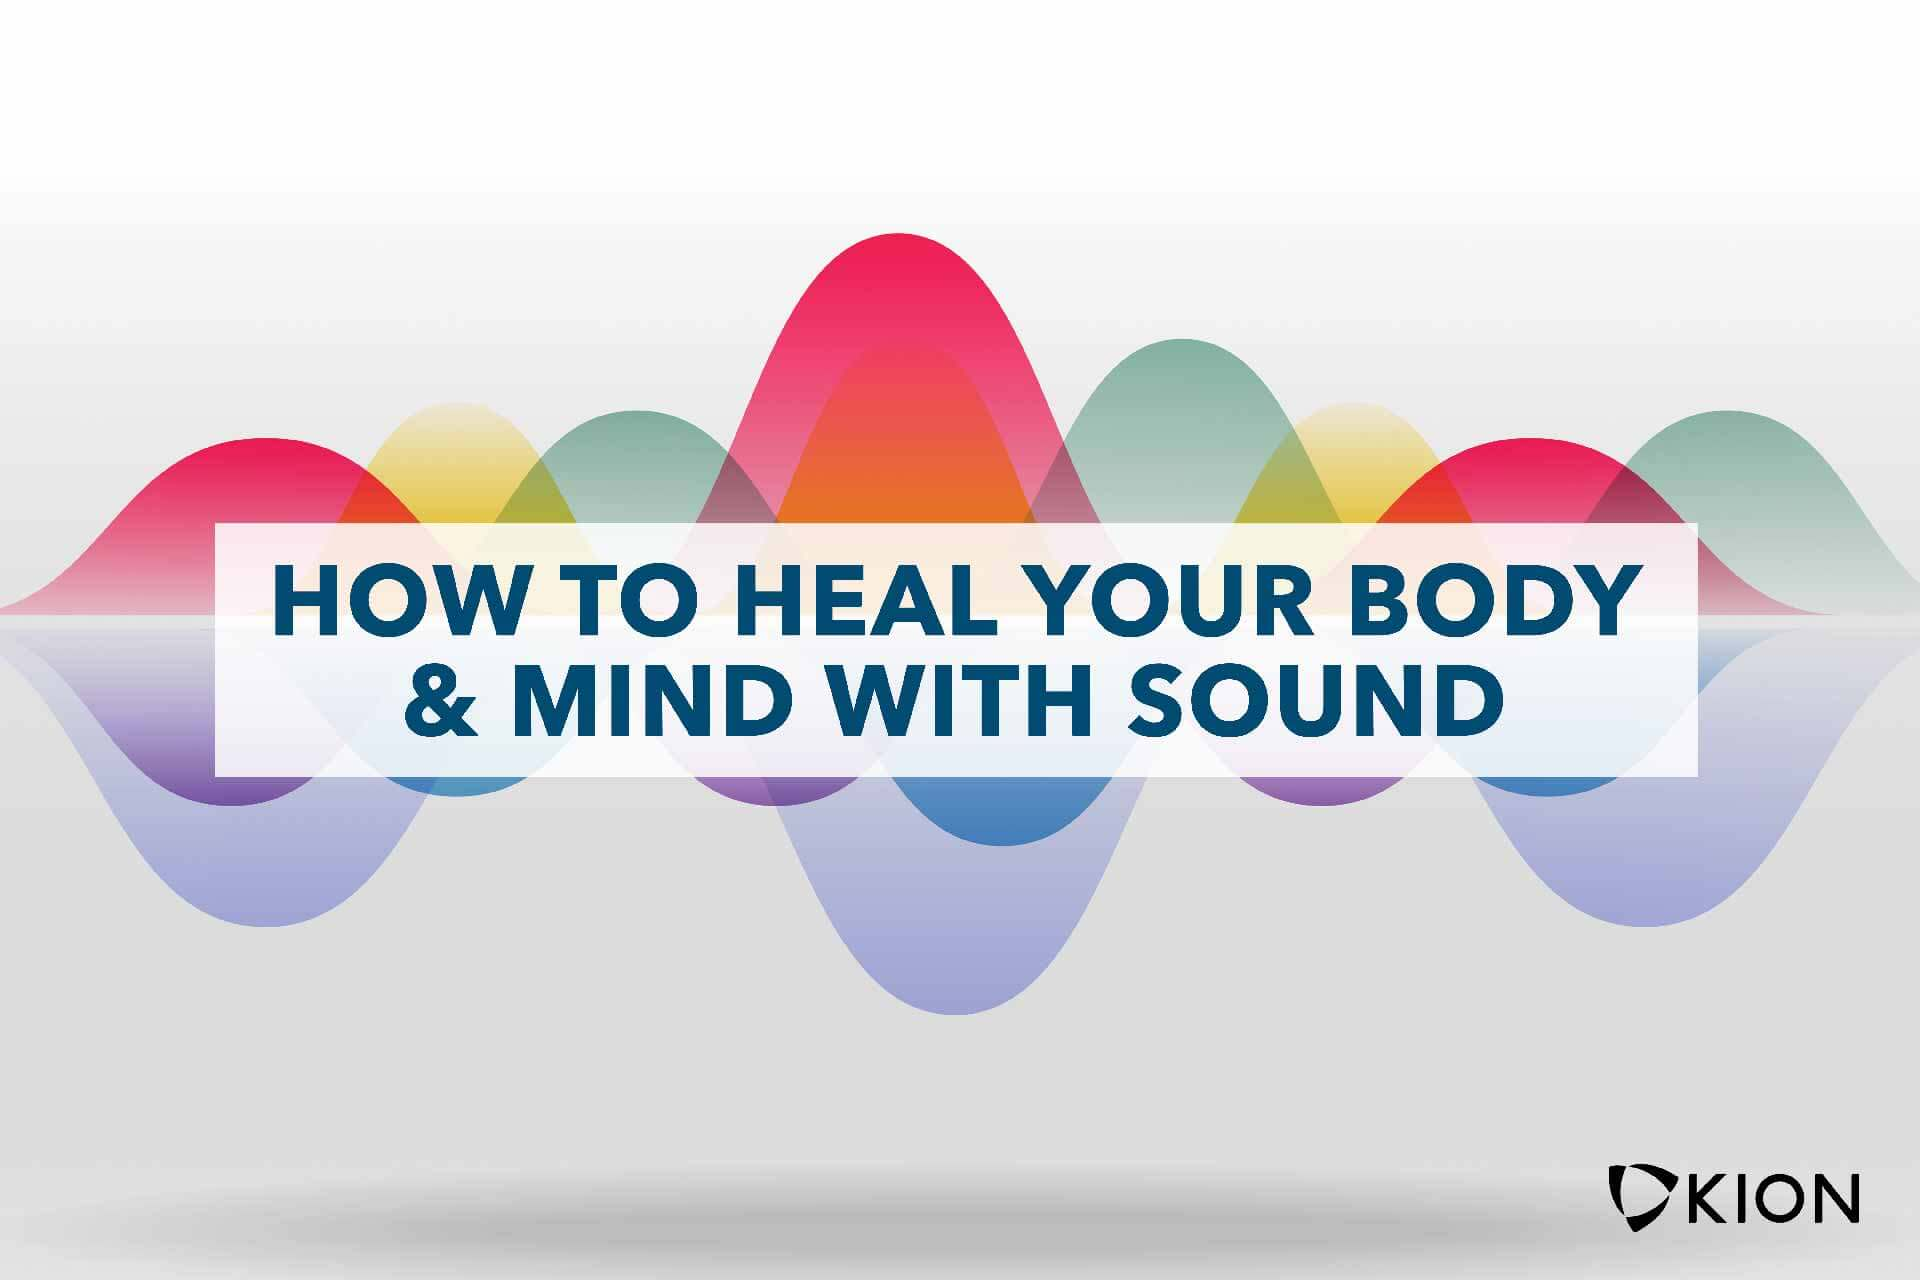 how-to-heal-your-body-mind-with-sound.jpg